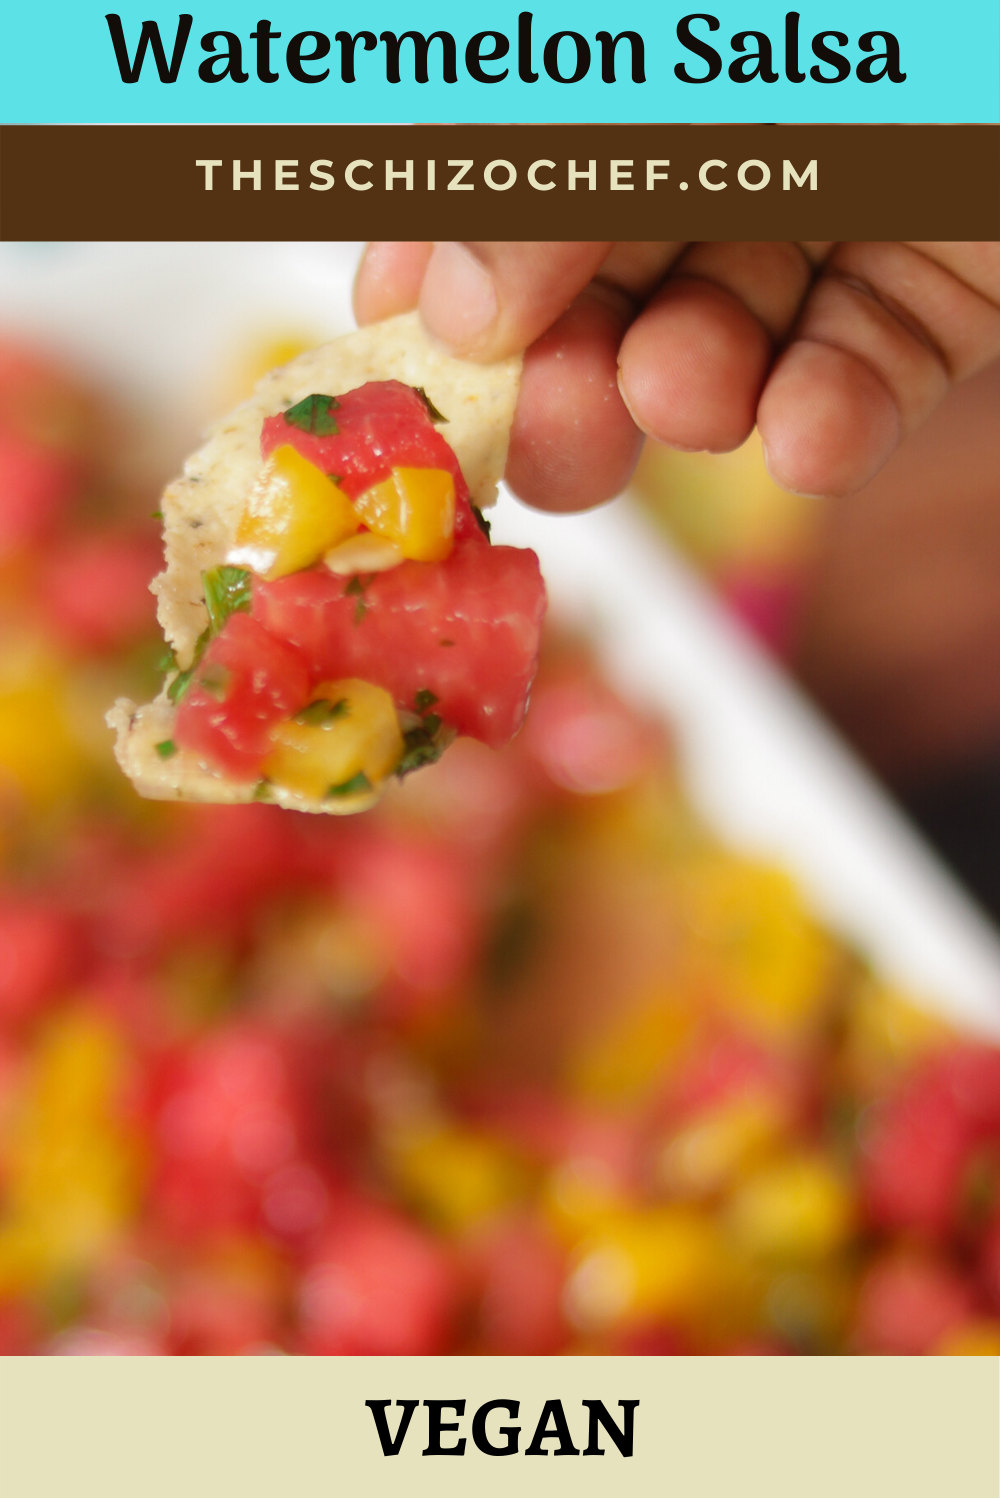 Watermelon Salsa recipe with text